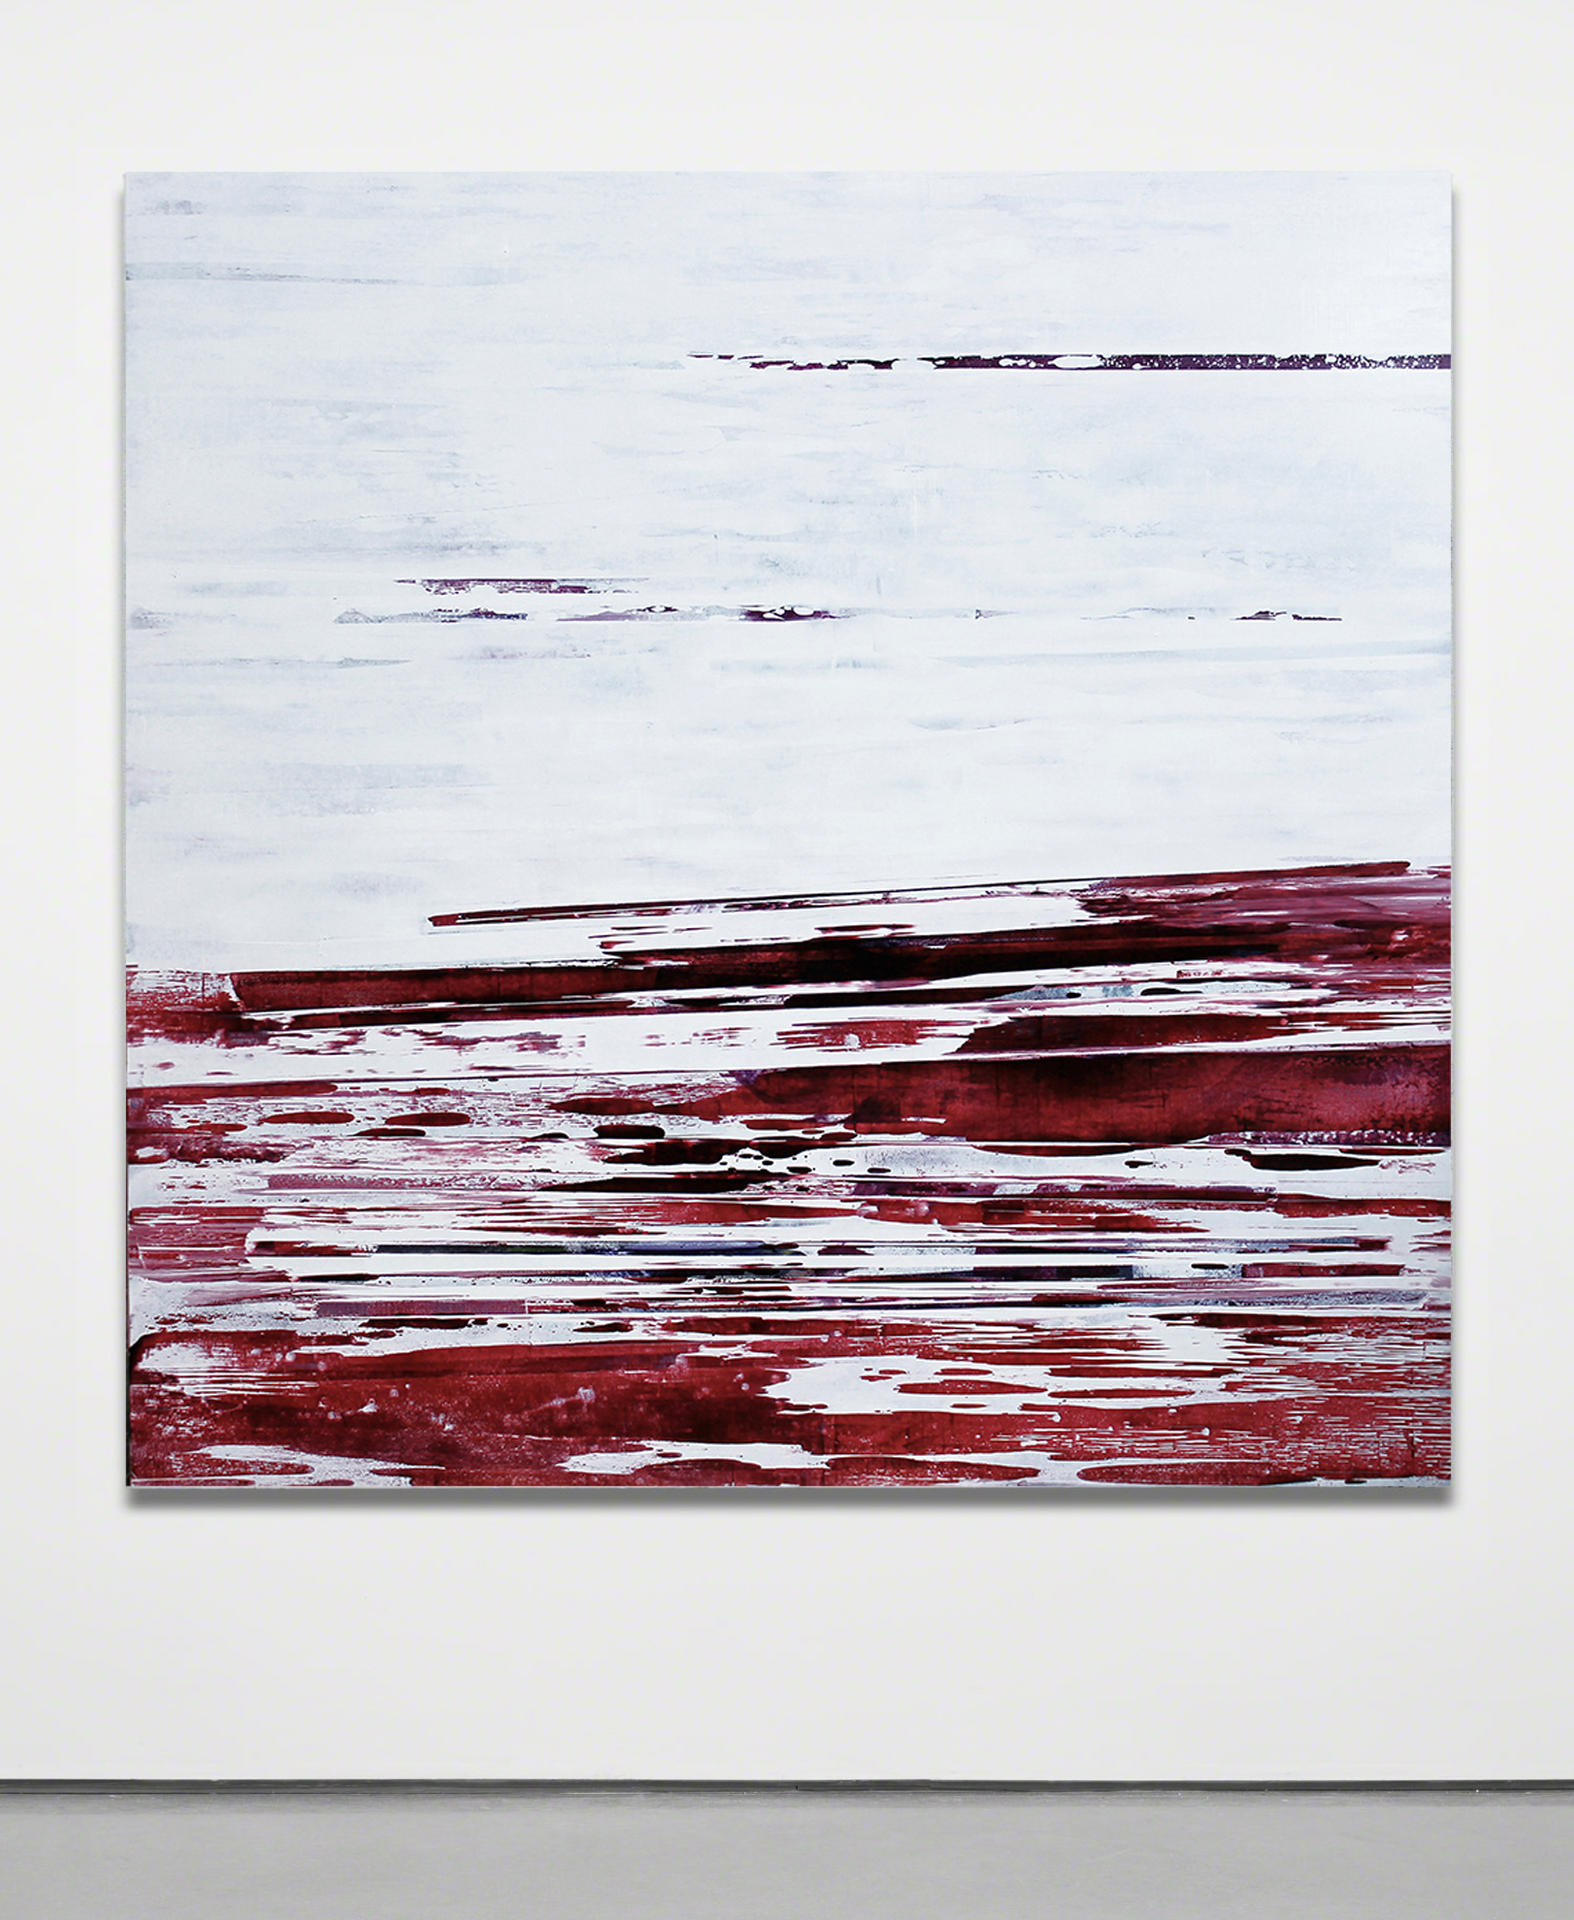 The Clearing, 2012, Handmade oil paint on canvas, 60 x 60 inches